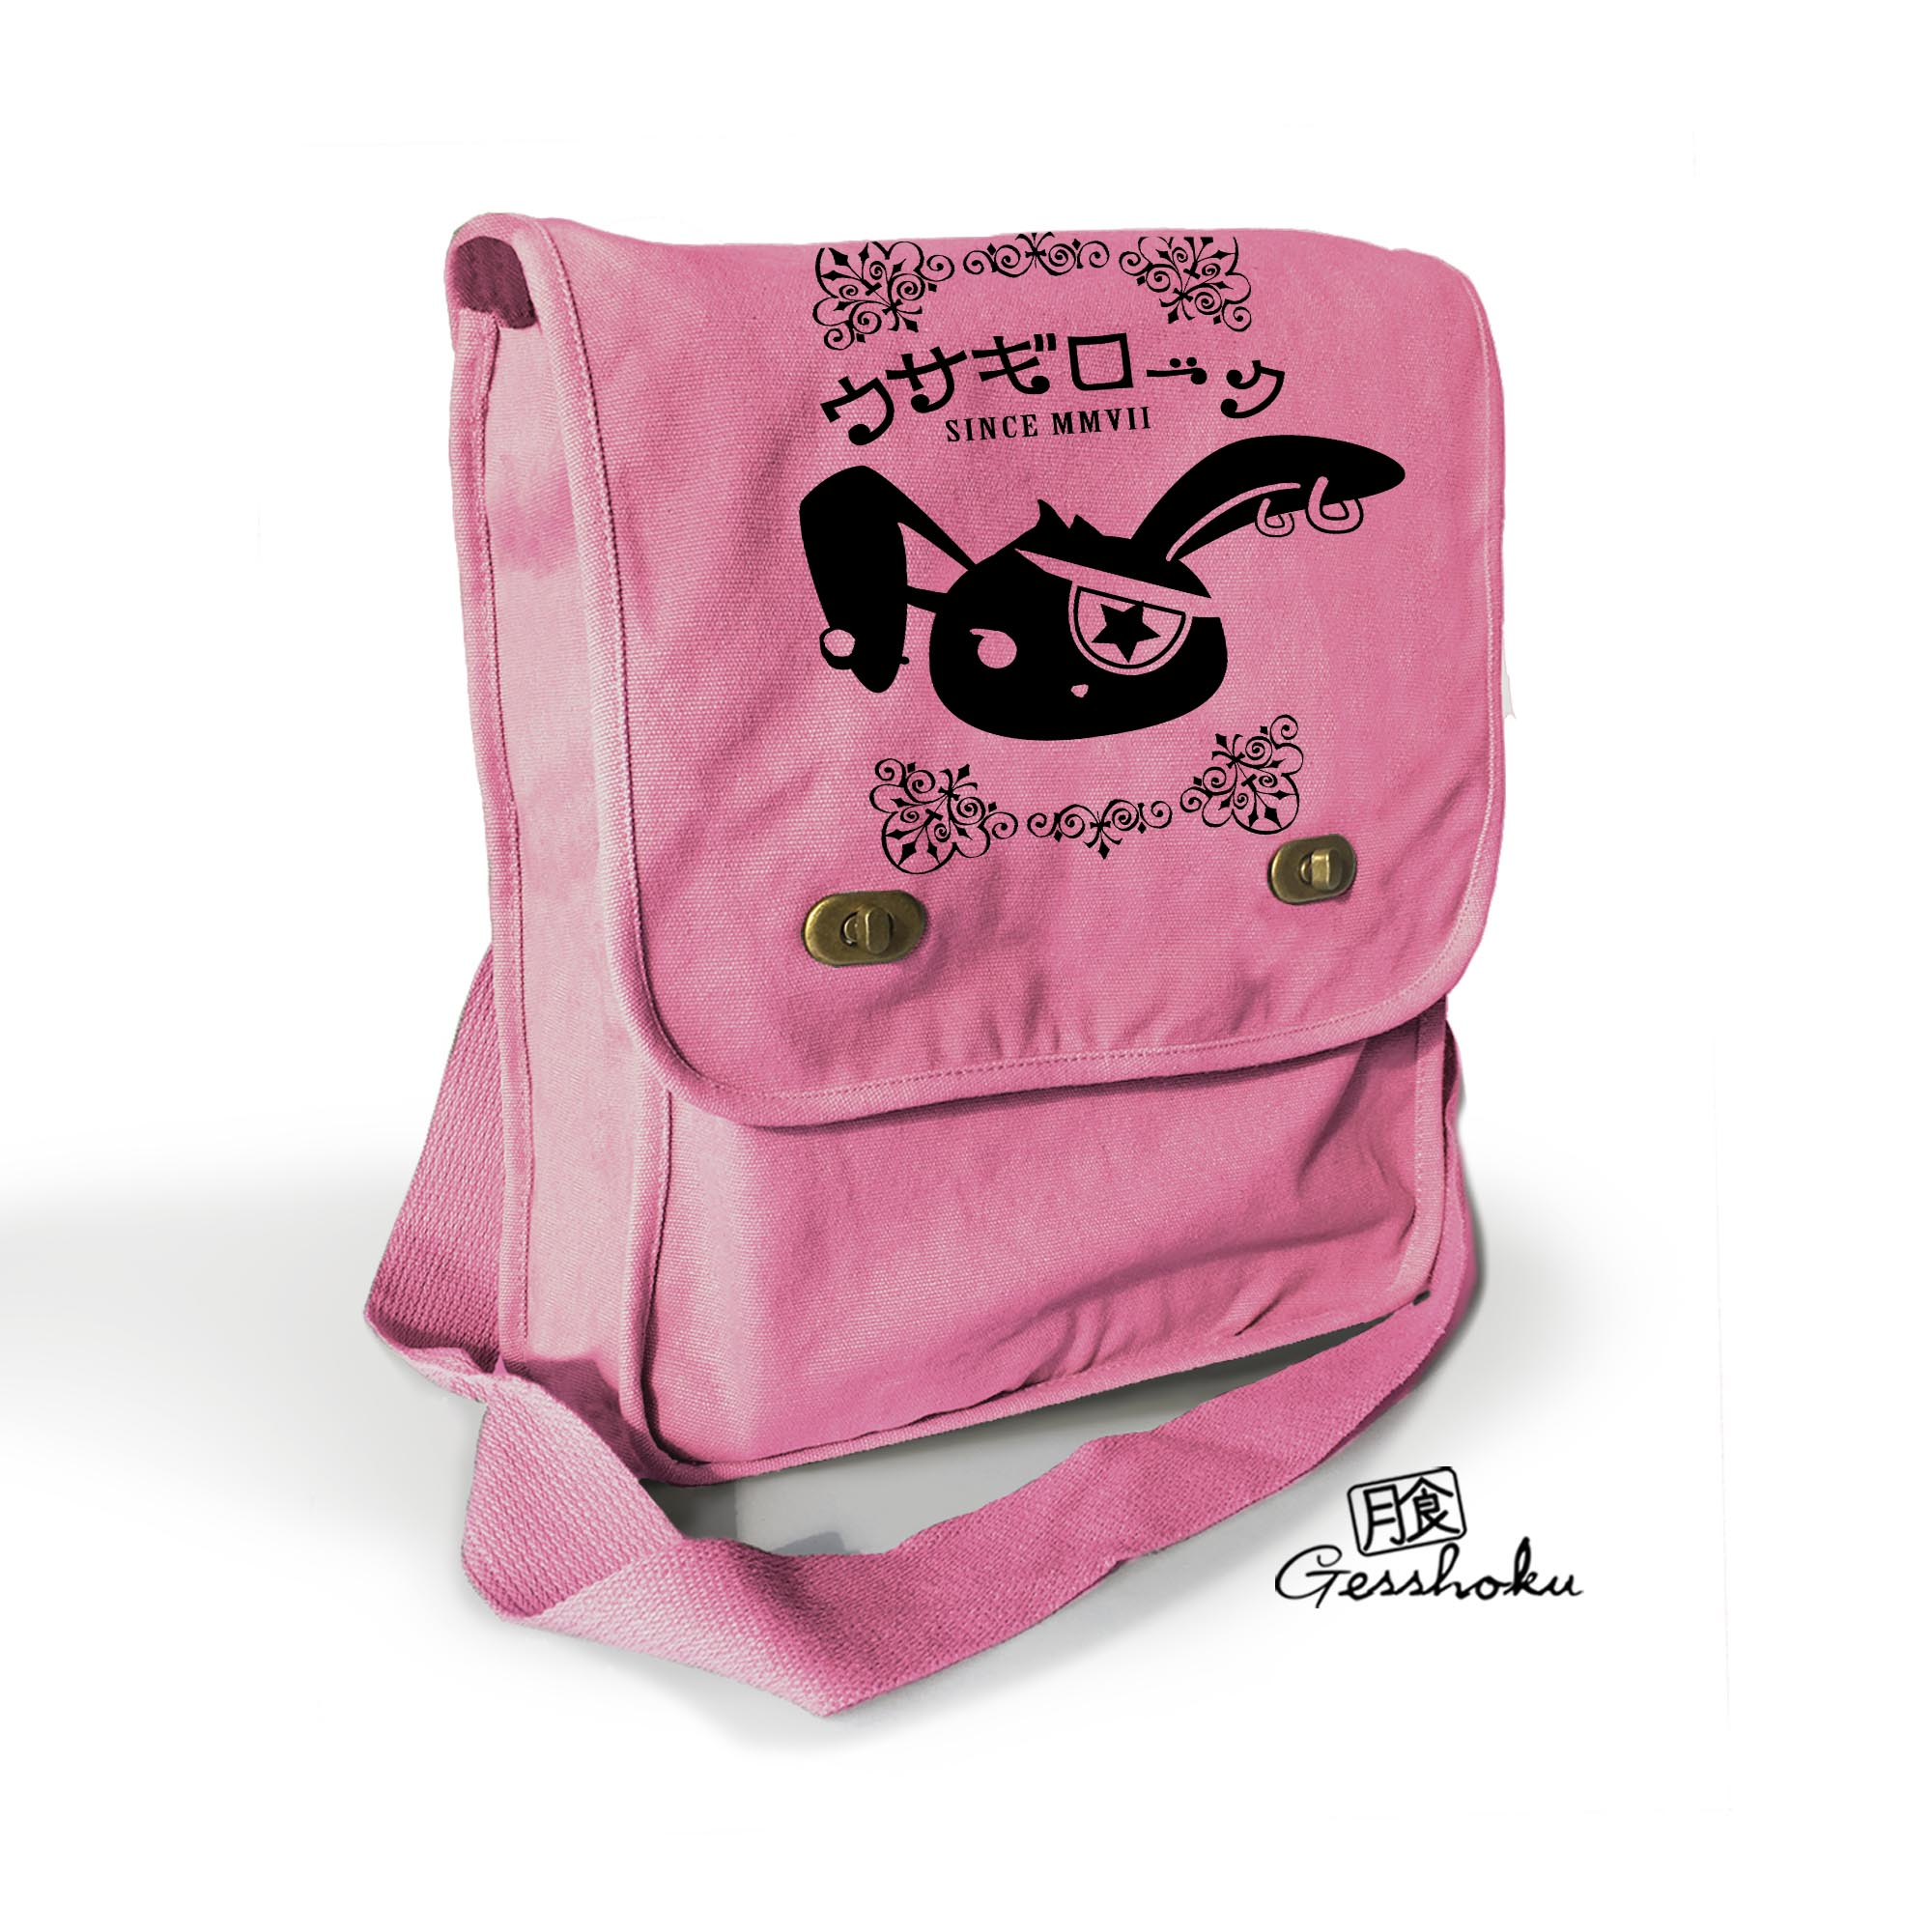 Usagi Jrock Bunny Field Bag - Pink